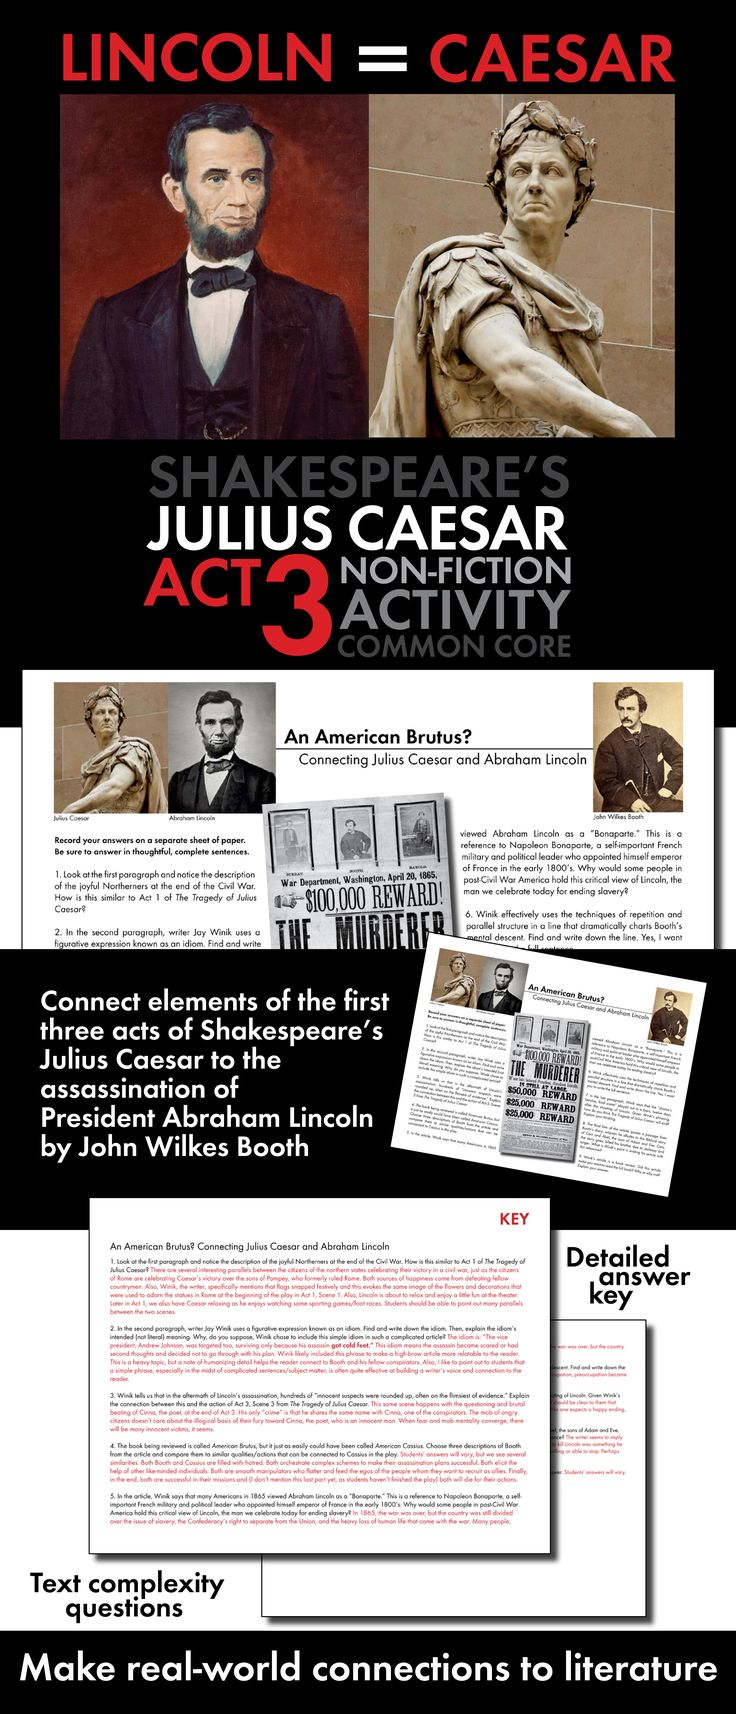 julius caesar essays Free term papers on julius caesar available at planet paperscom, the largest free term paper community.